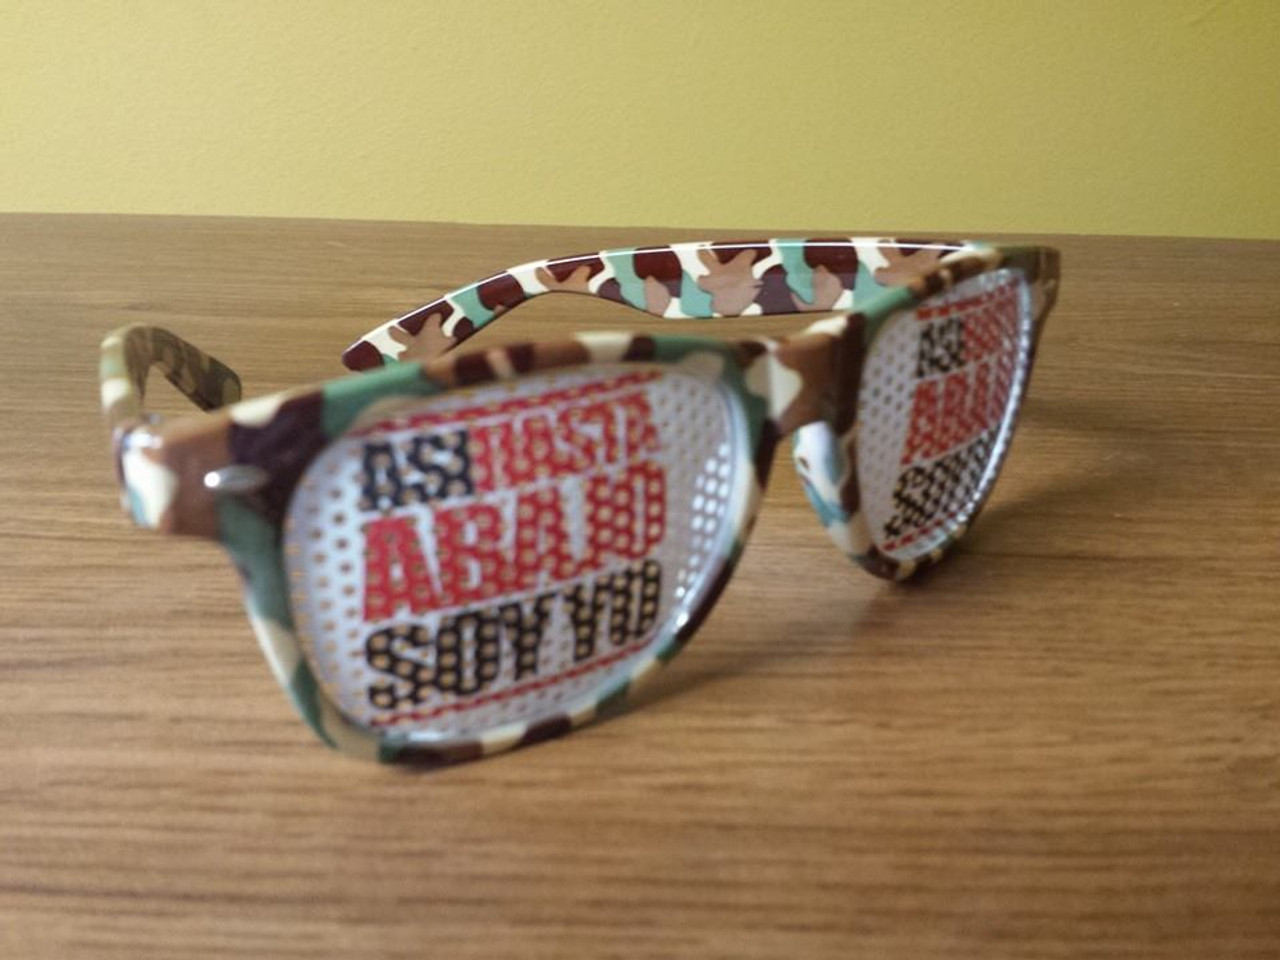 custom, printed, party, promo, camo, frames, sun glasses